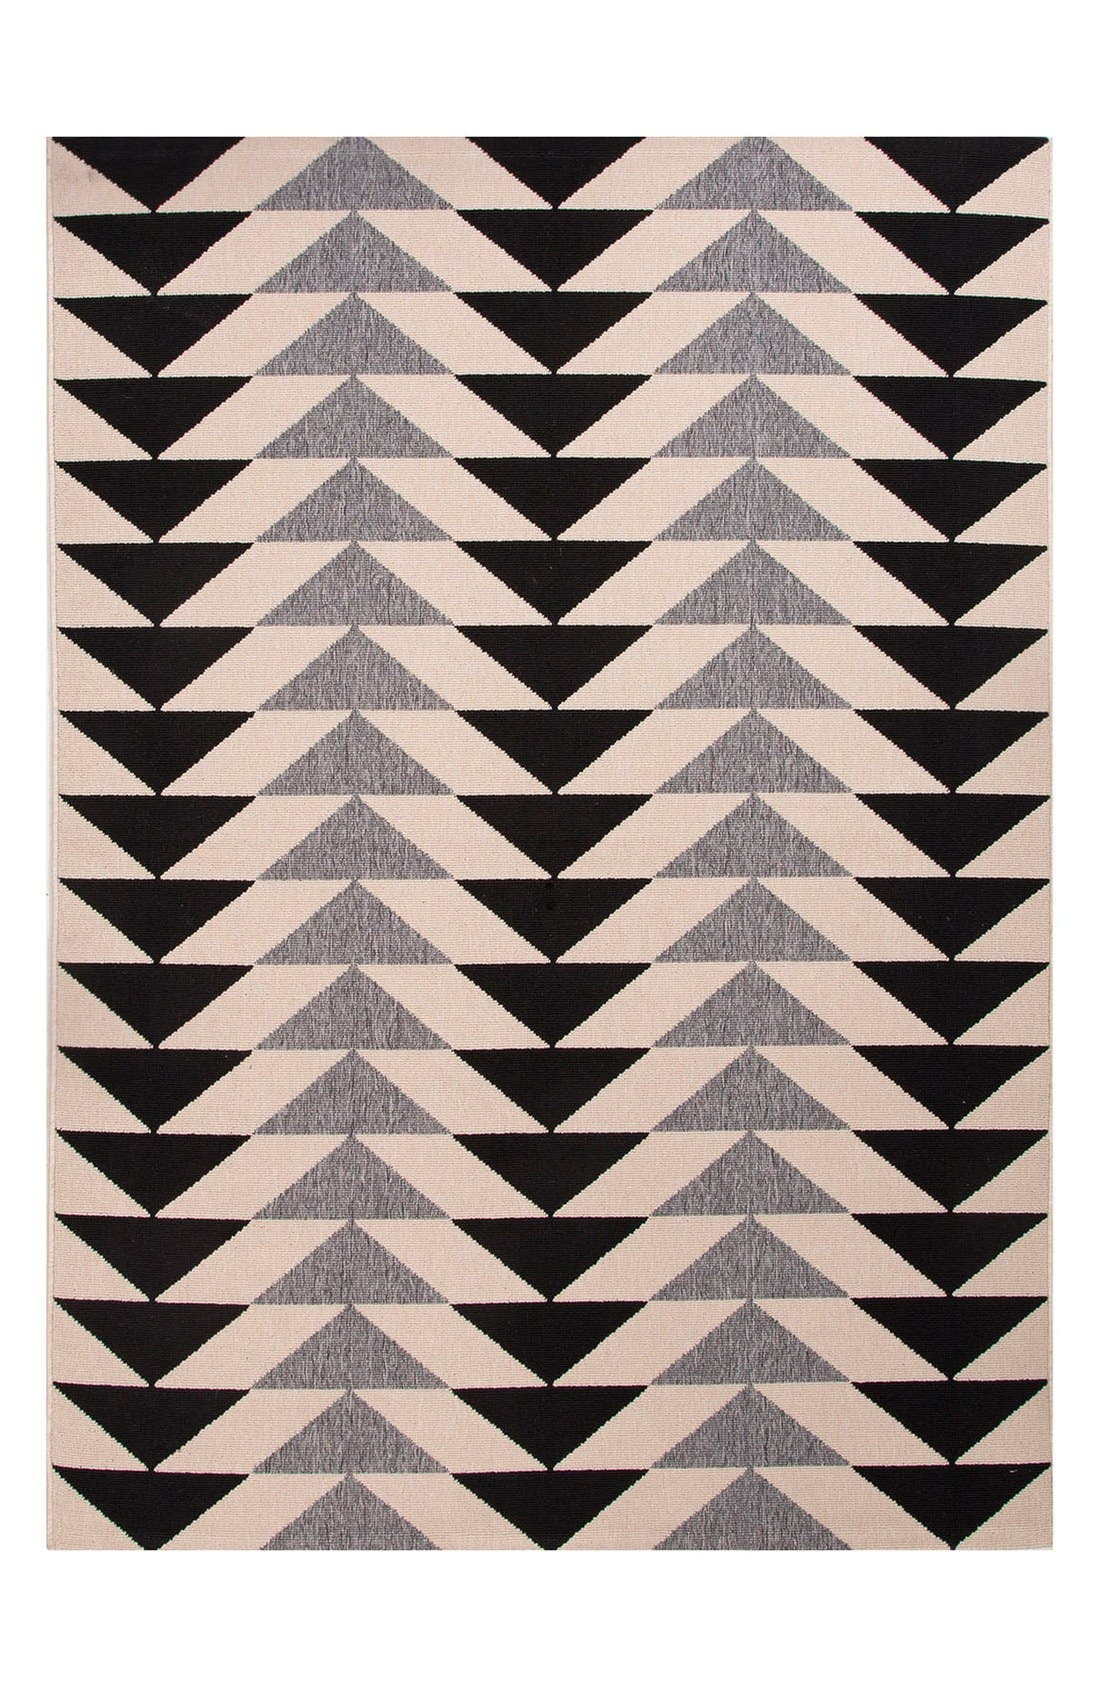 Jaipur 'Arrows' Indoor/Outdoor Rug